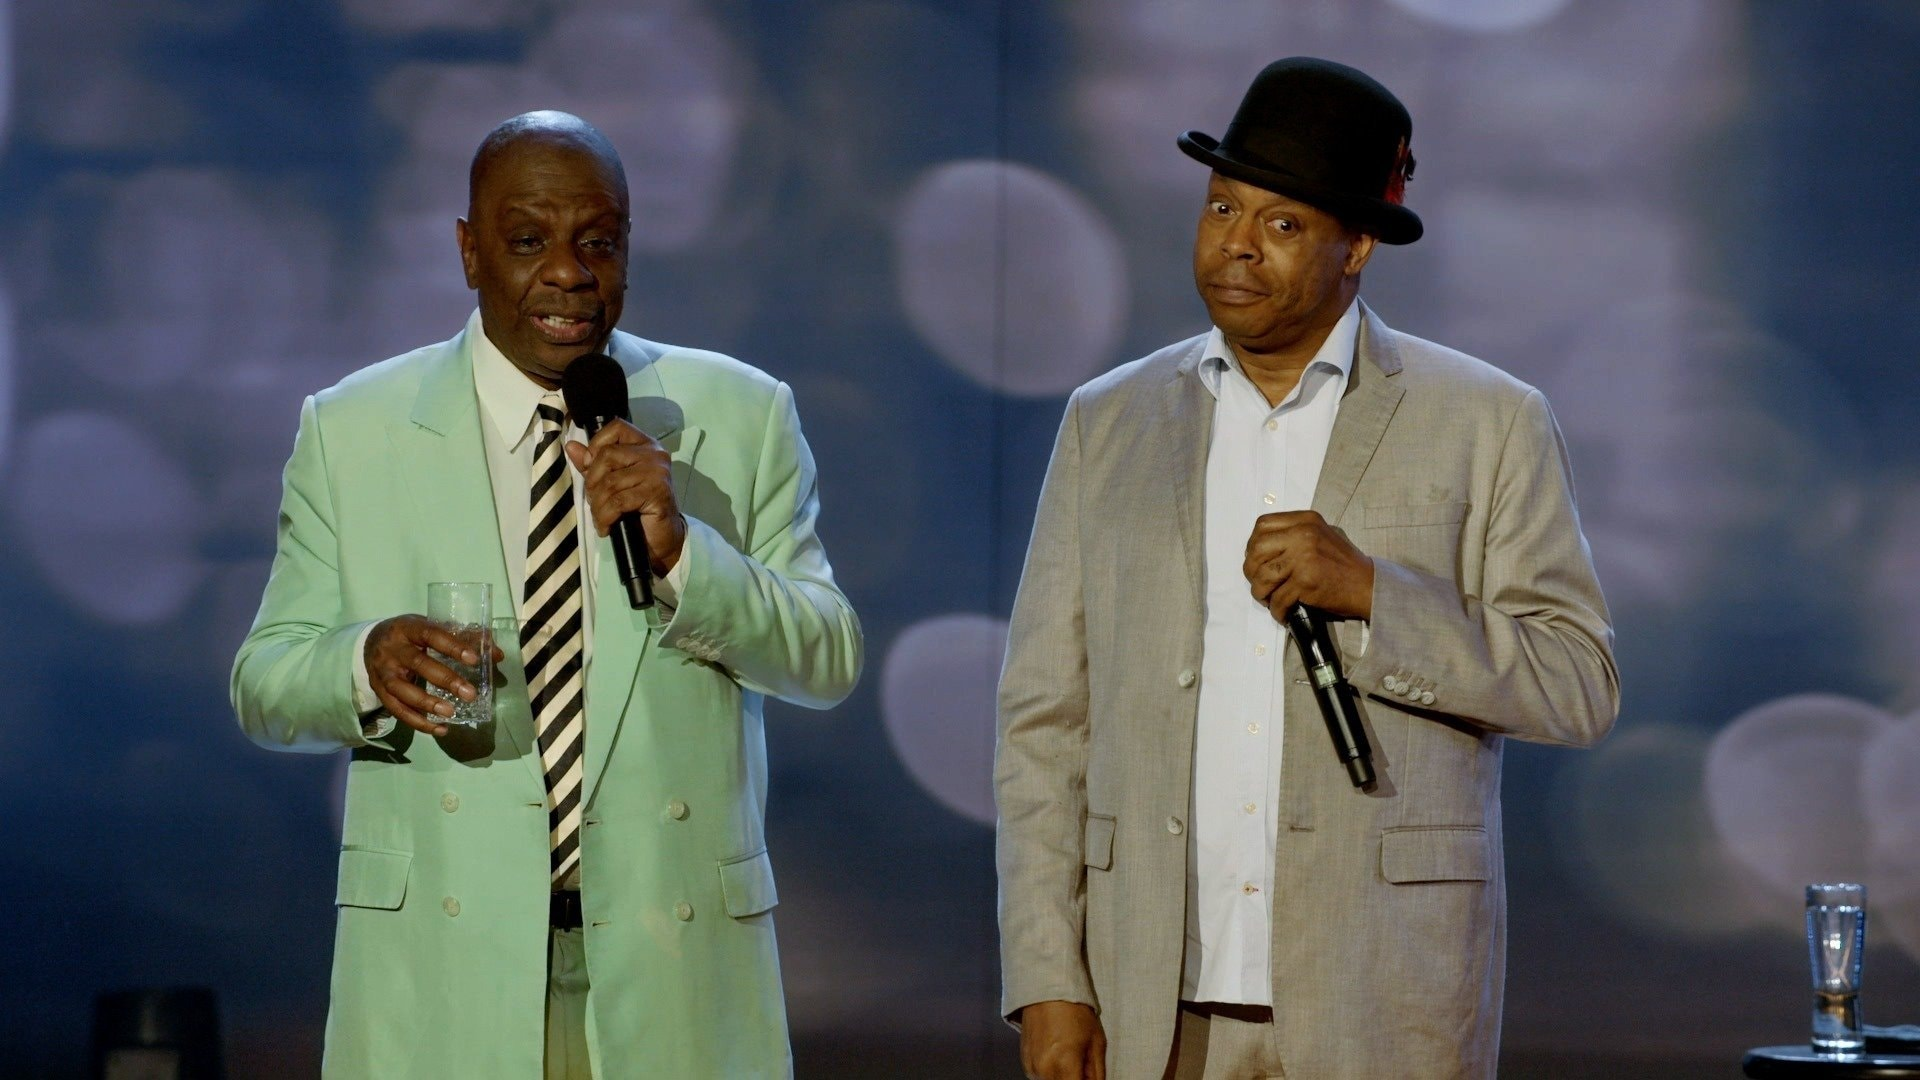 Jimmie JJ Walker and Michael Winslow: We Are Still Here